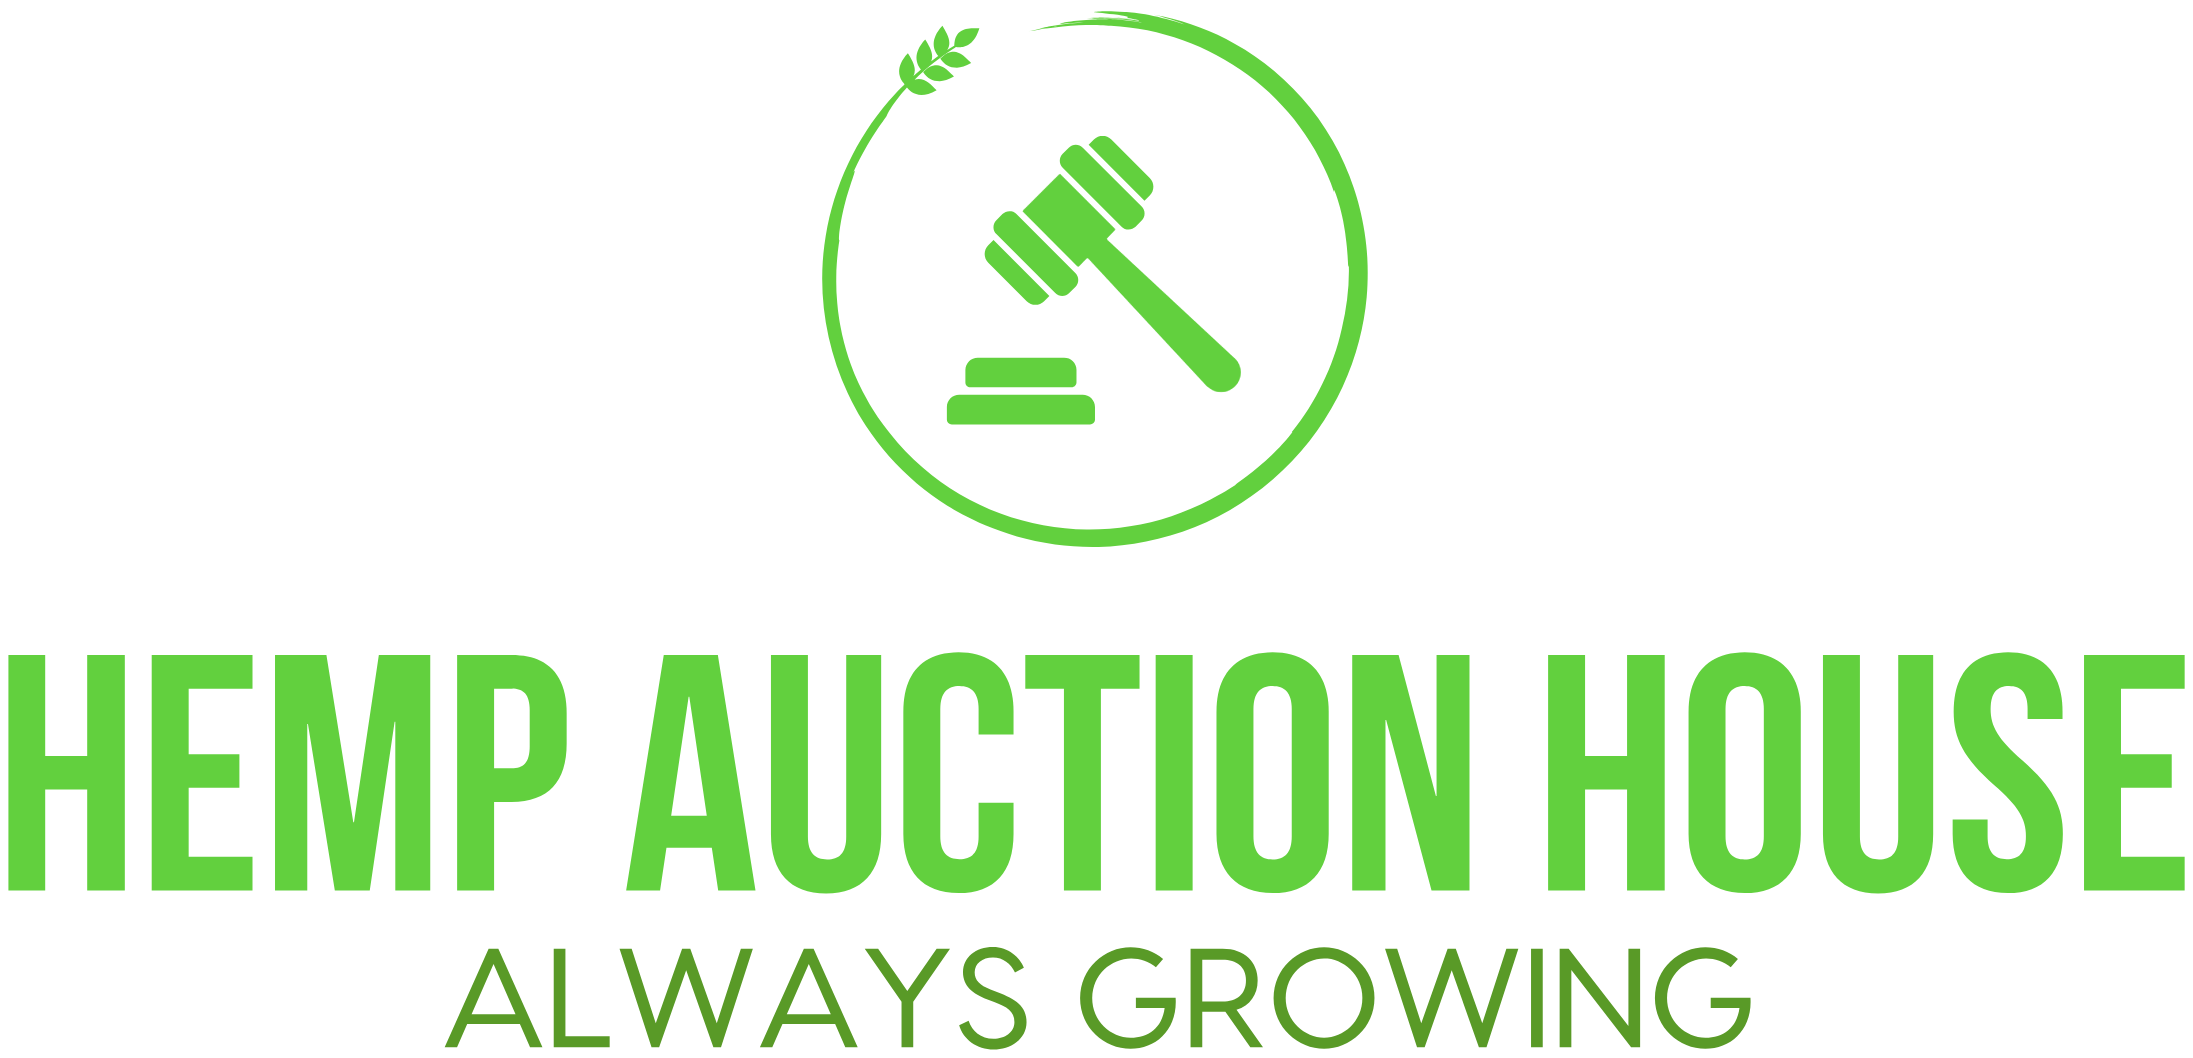 Hemp Auction House